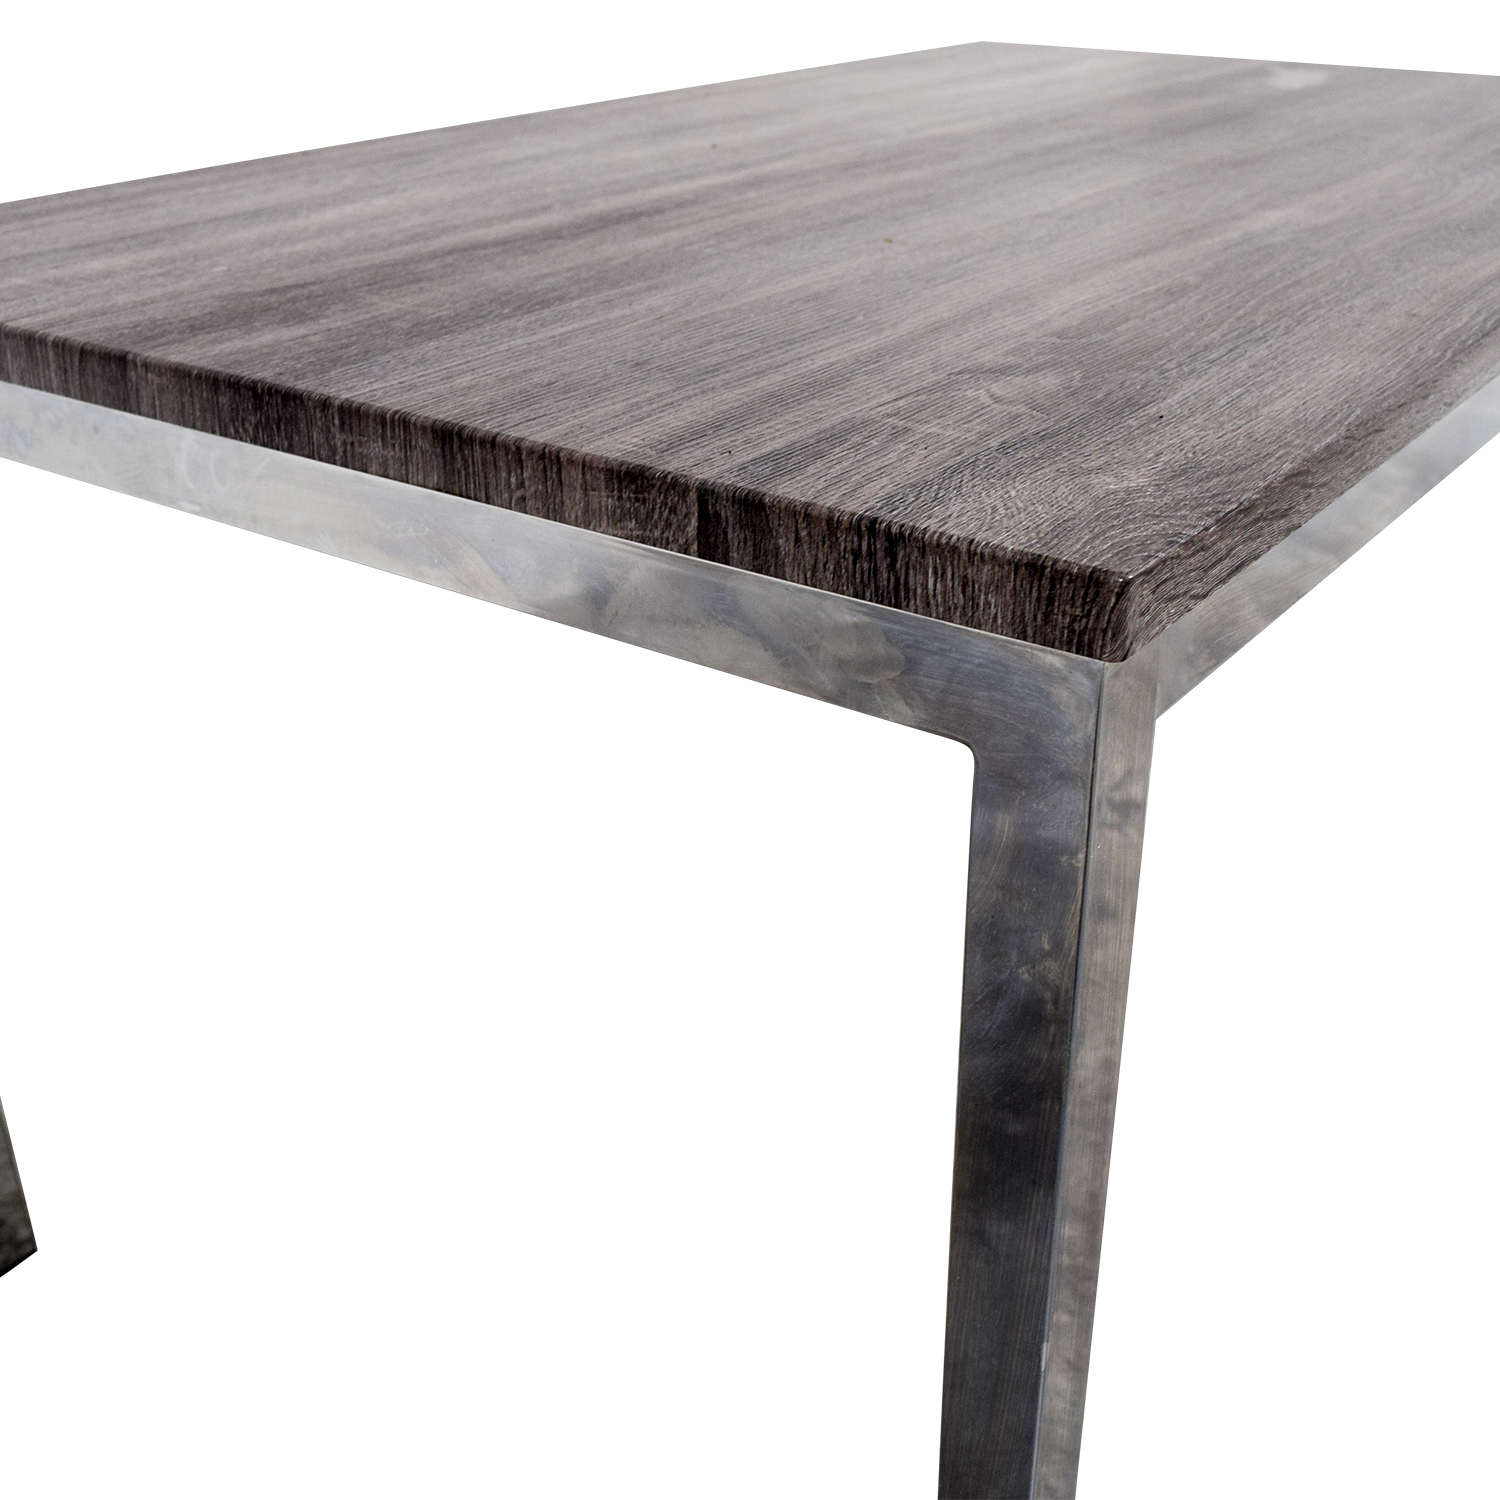 Wildon Home Wildon Home Rustic Wood Top and Chrome Dining Table Grey / Brown / Chrome